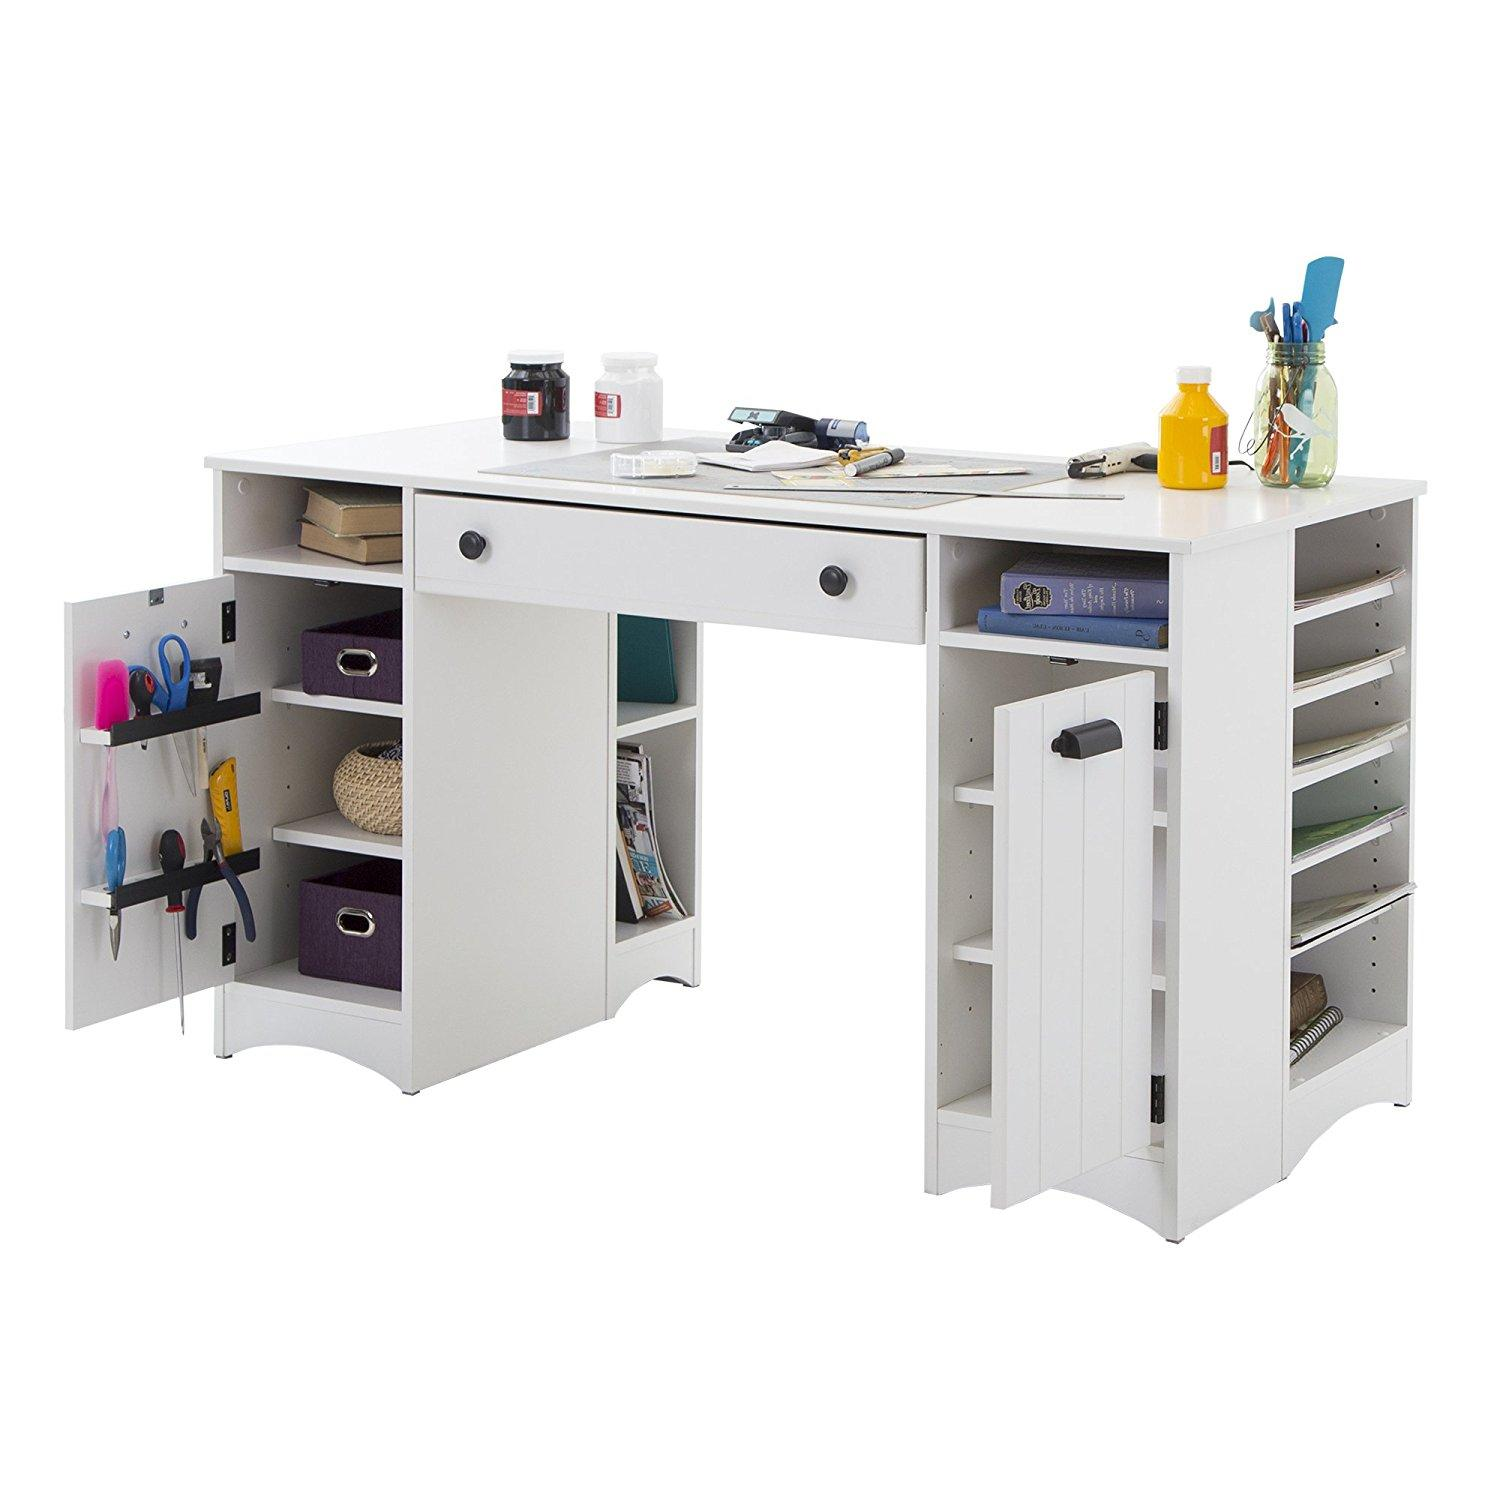 Amazon.com: South Shore Artwork Craft Table with Storage ...